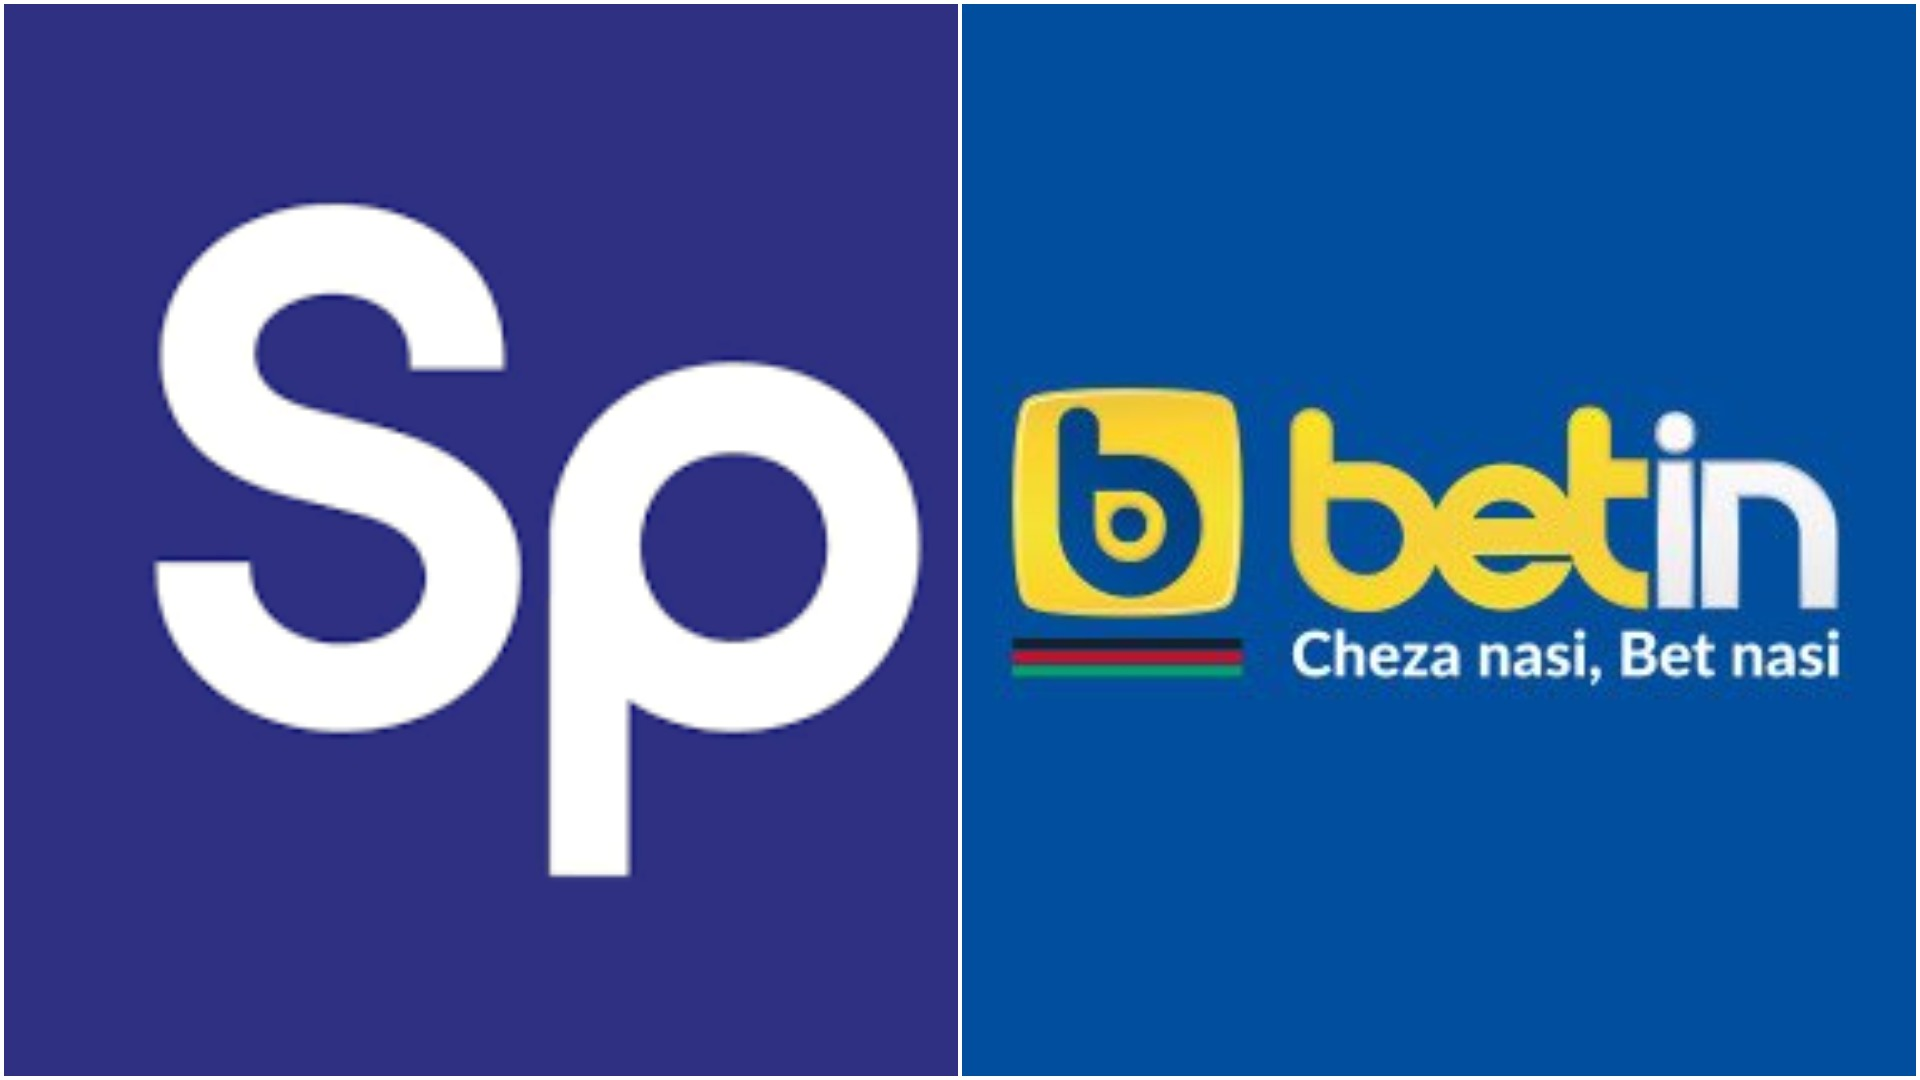 Seven Betting firms including SportPesa and Betin had won the case to reduce the withholding tax www.businesstoday.co.ke